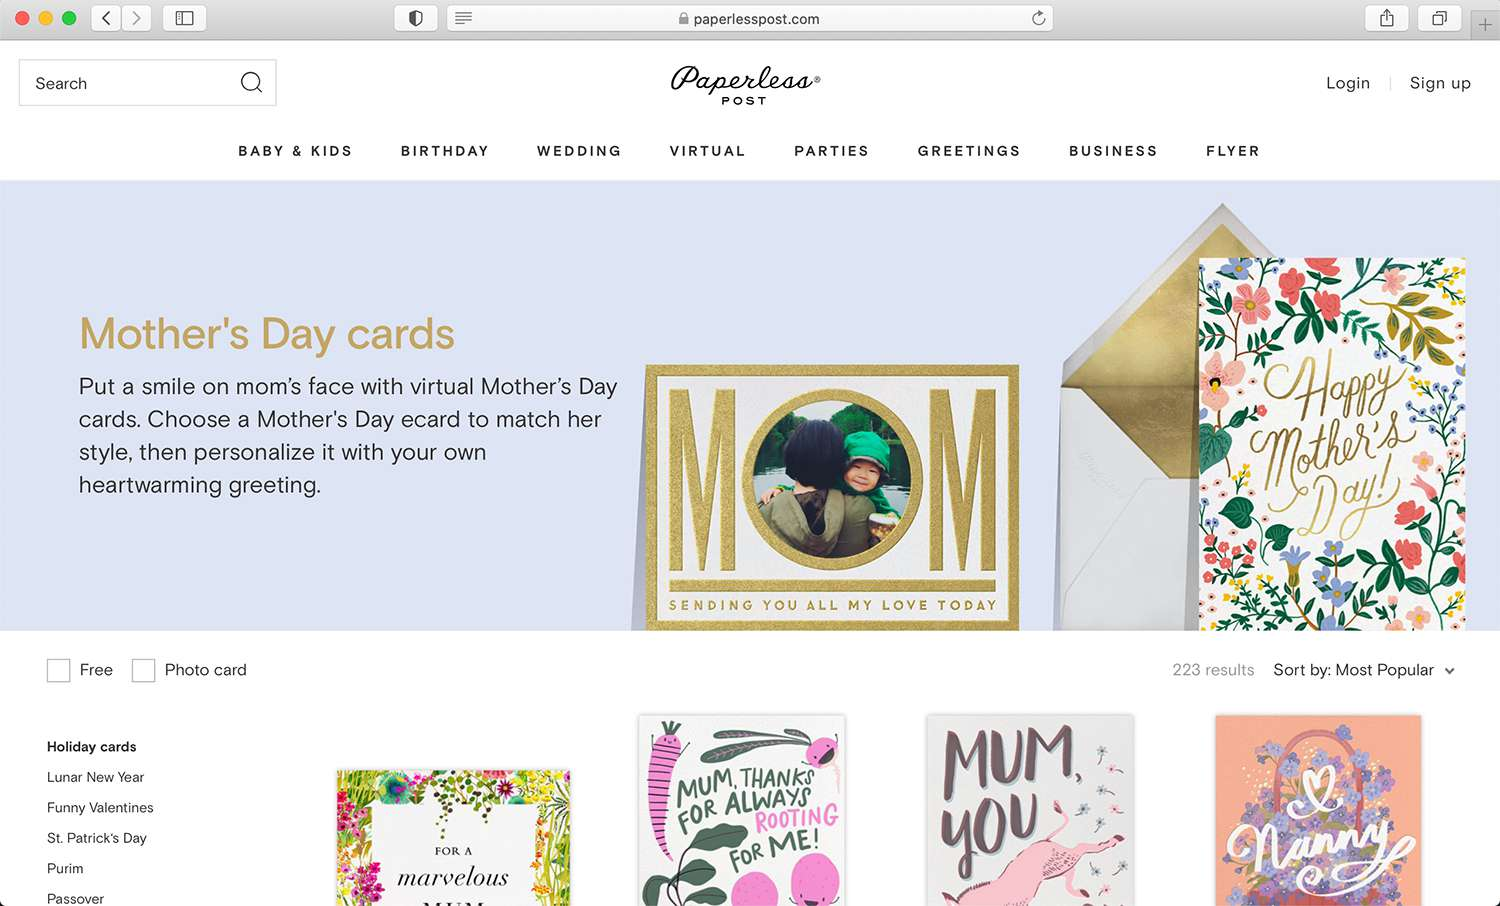 Paperless Post invitation and e-card design site for parties and special occasions